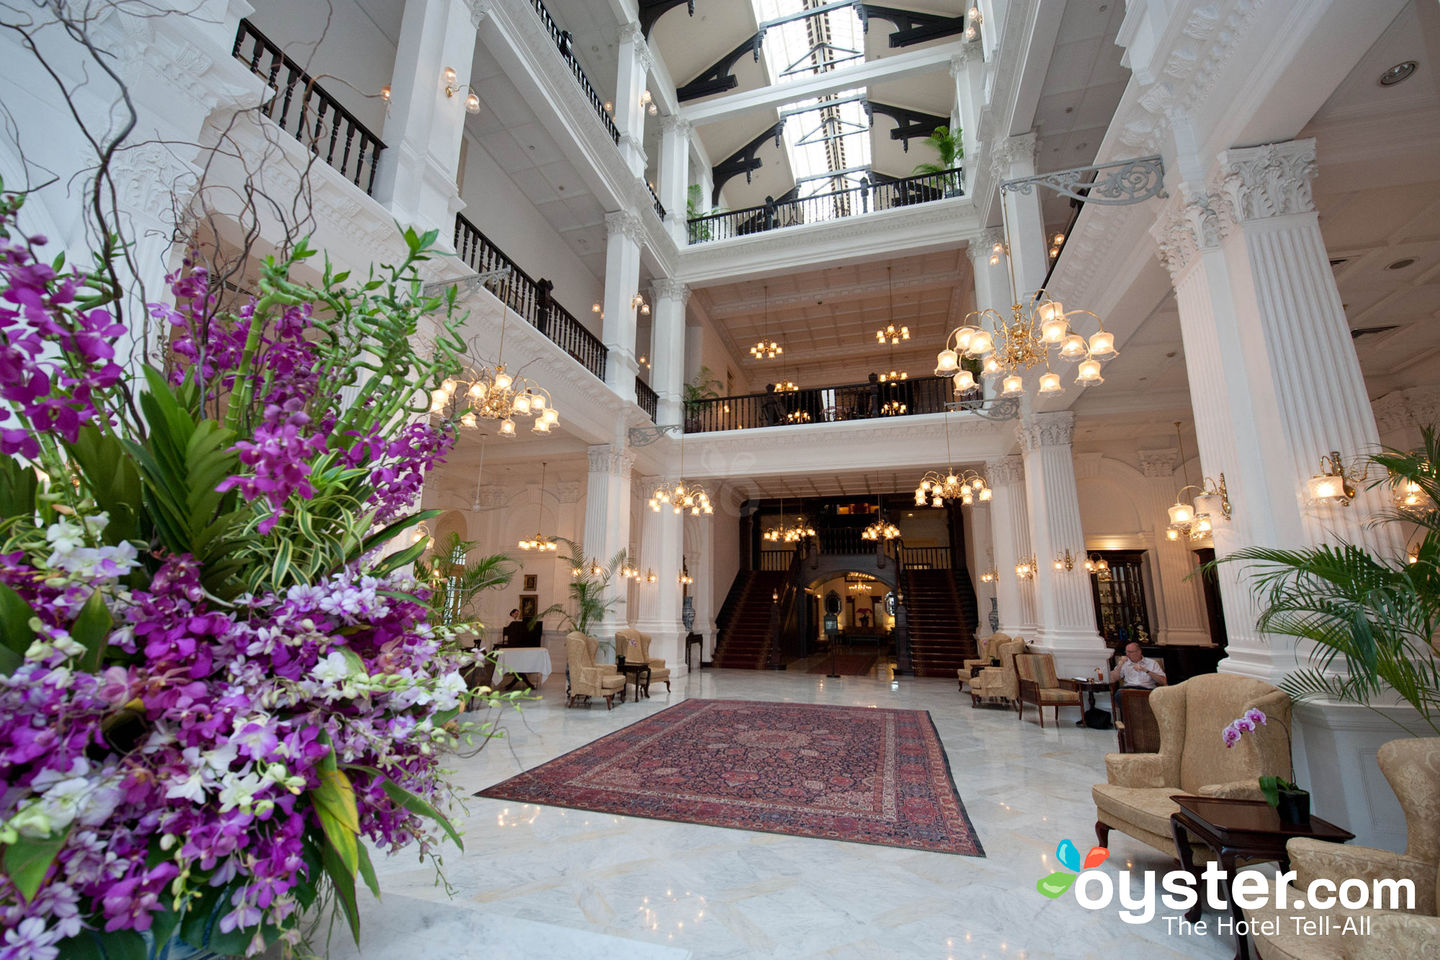 Raffles Hotel Singapore Review: What To REALLY Expect If You Stay